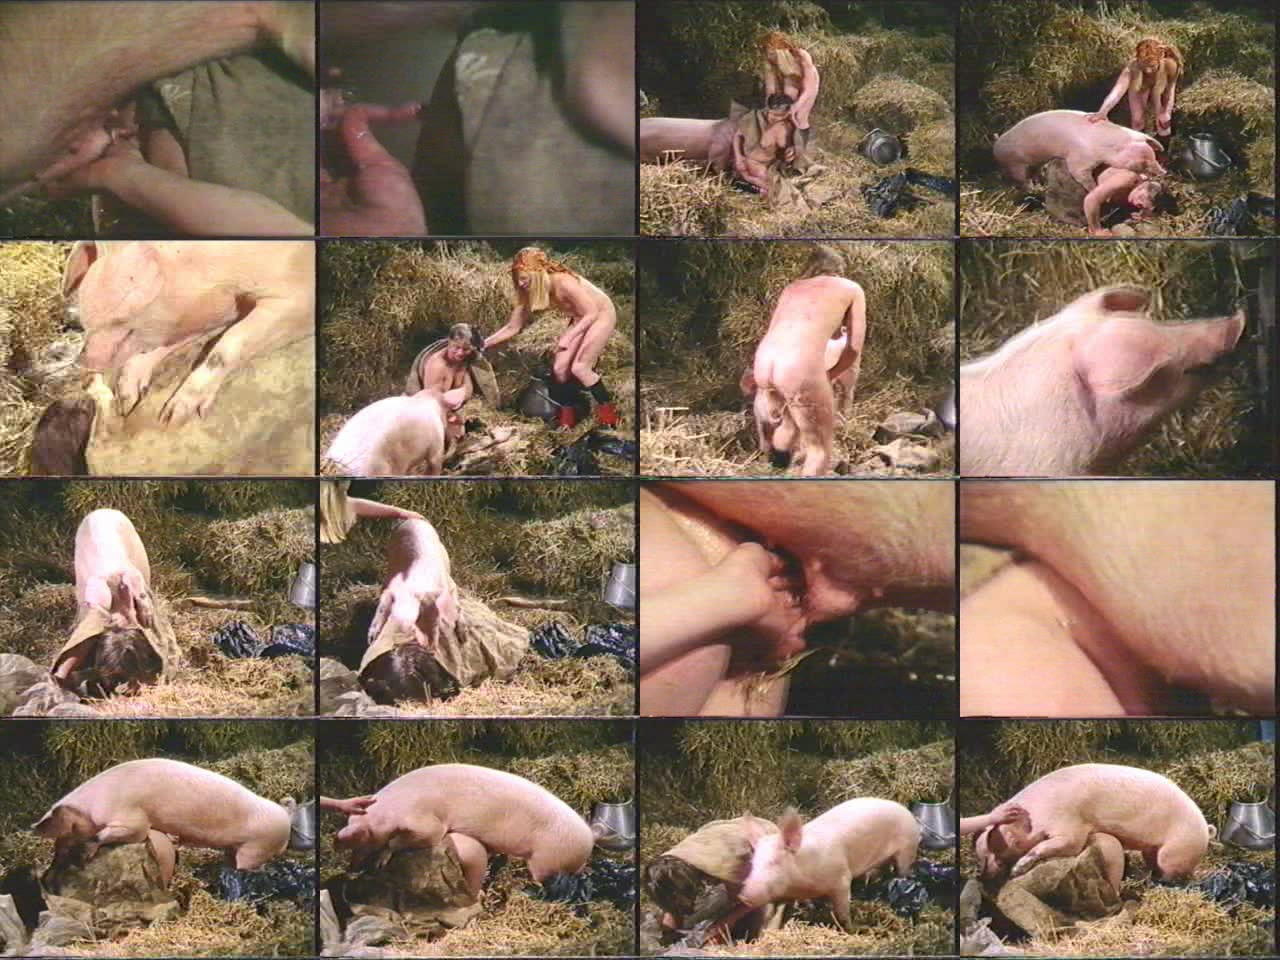 Woman fuck with pig erotica video